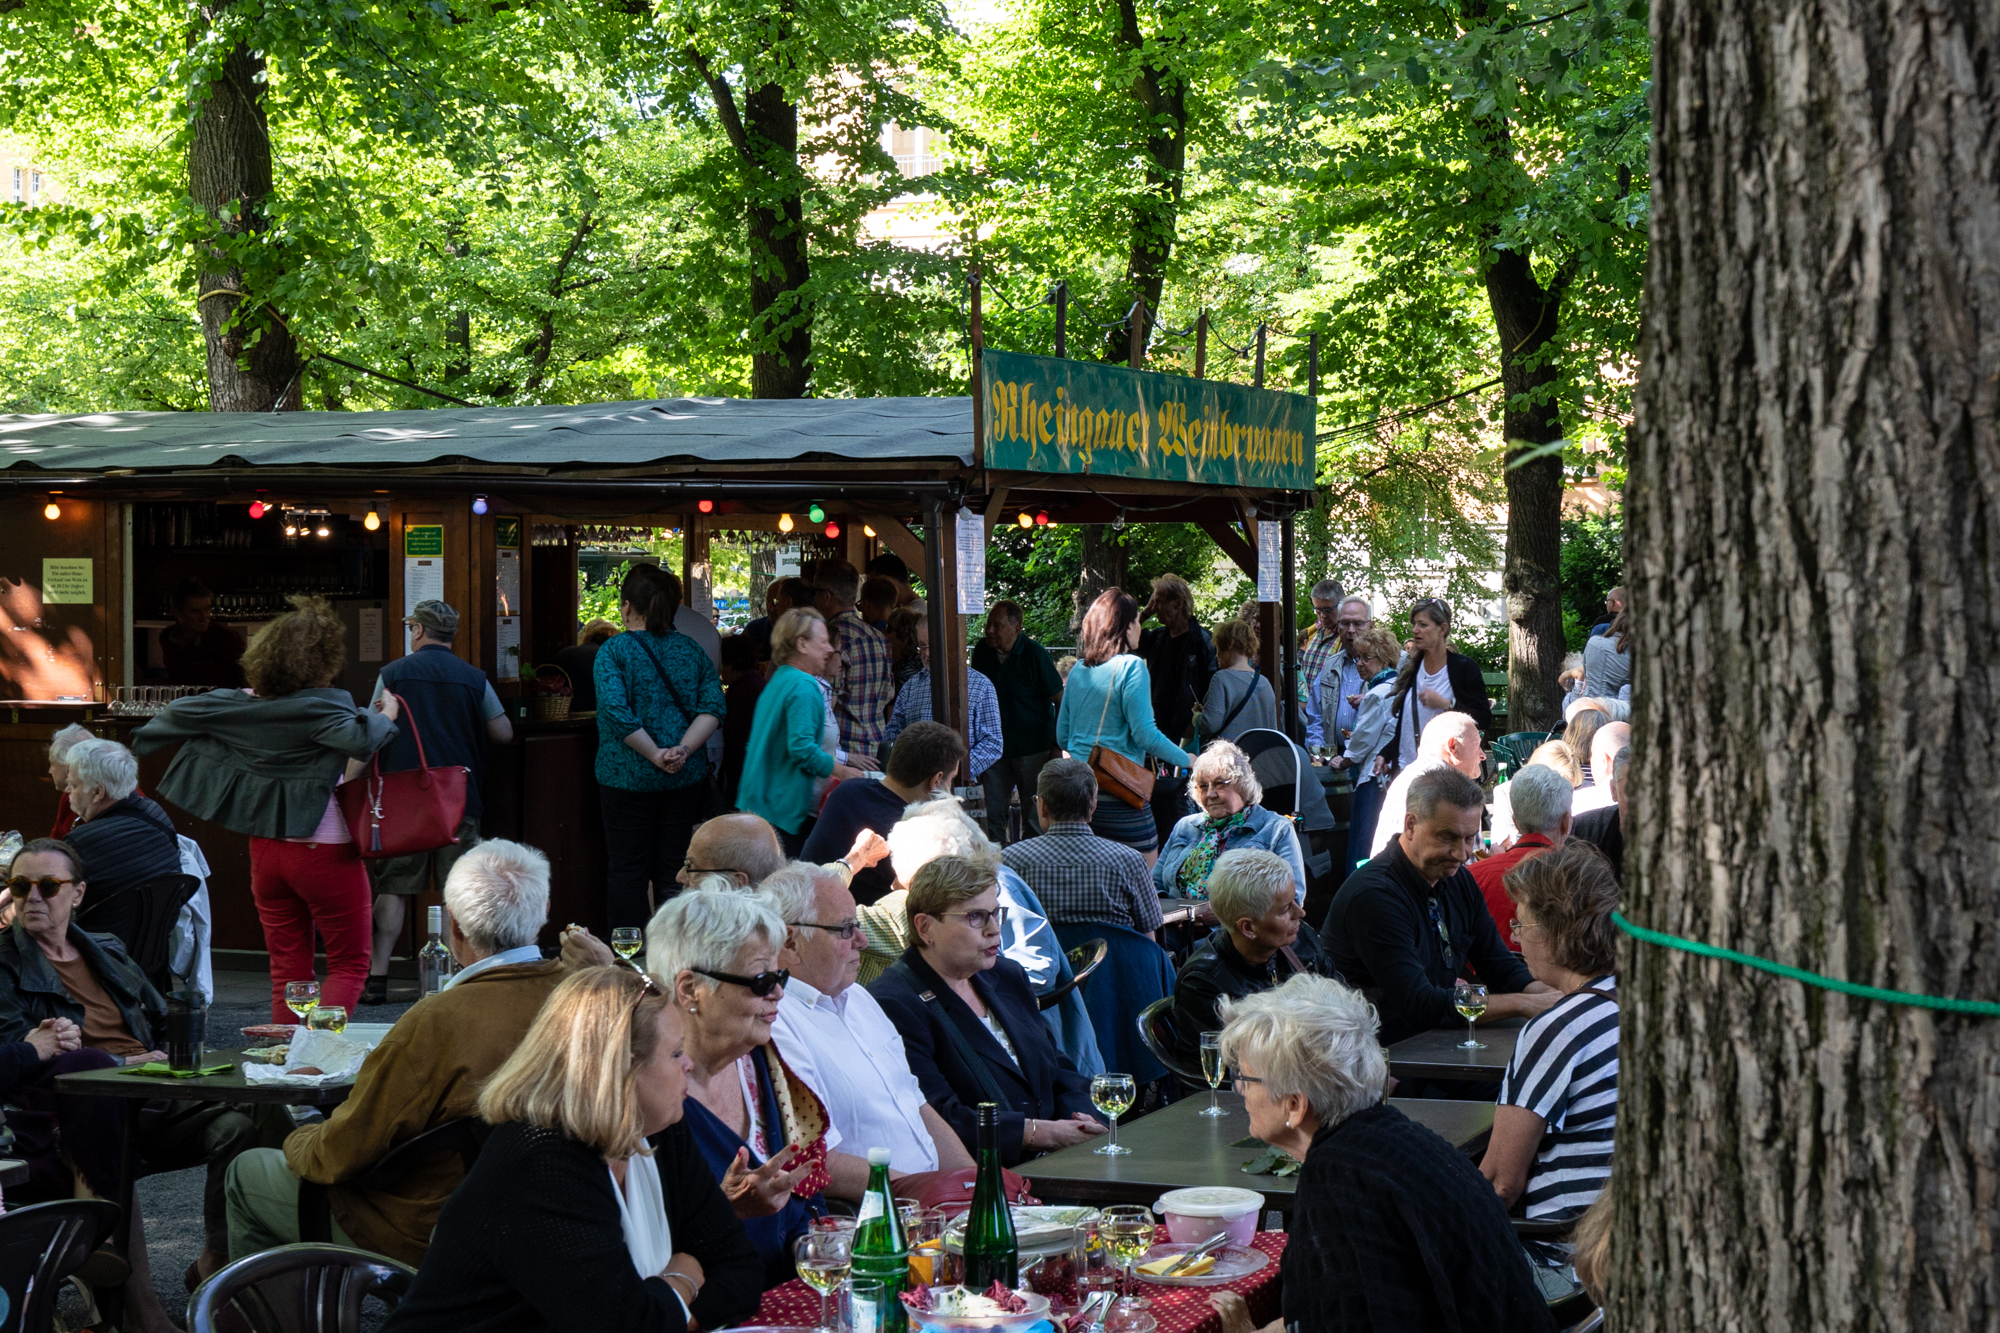 Guests under the trees at Rheingauer Weinbrunnen - a wooden hut serving wines from Rheingau-Taunus district of Hesse on the Rüdesheimer Platz in Berlin Wilmersdorf